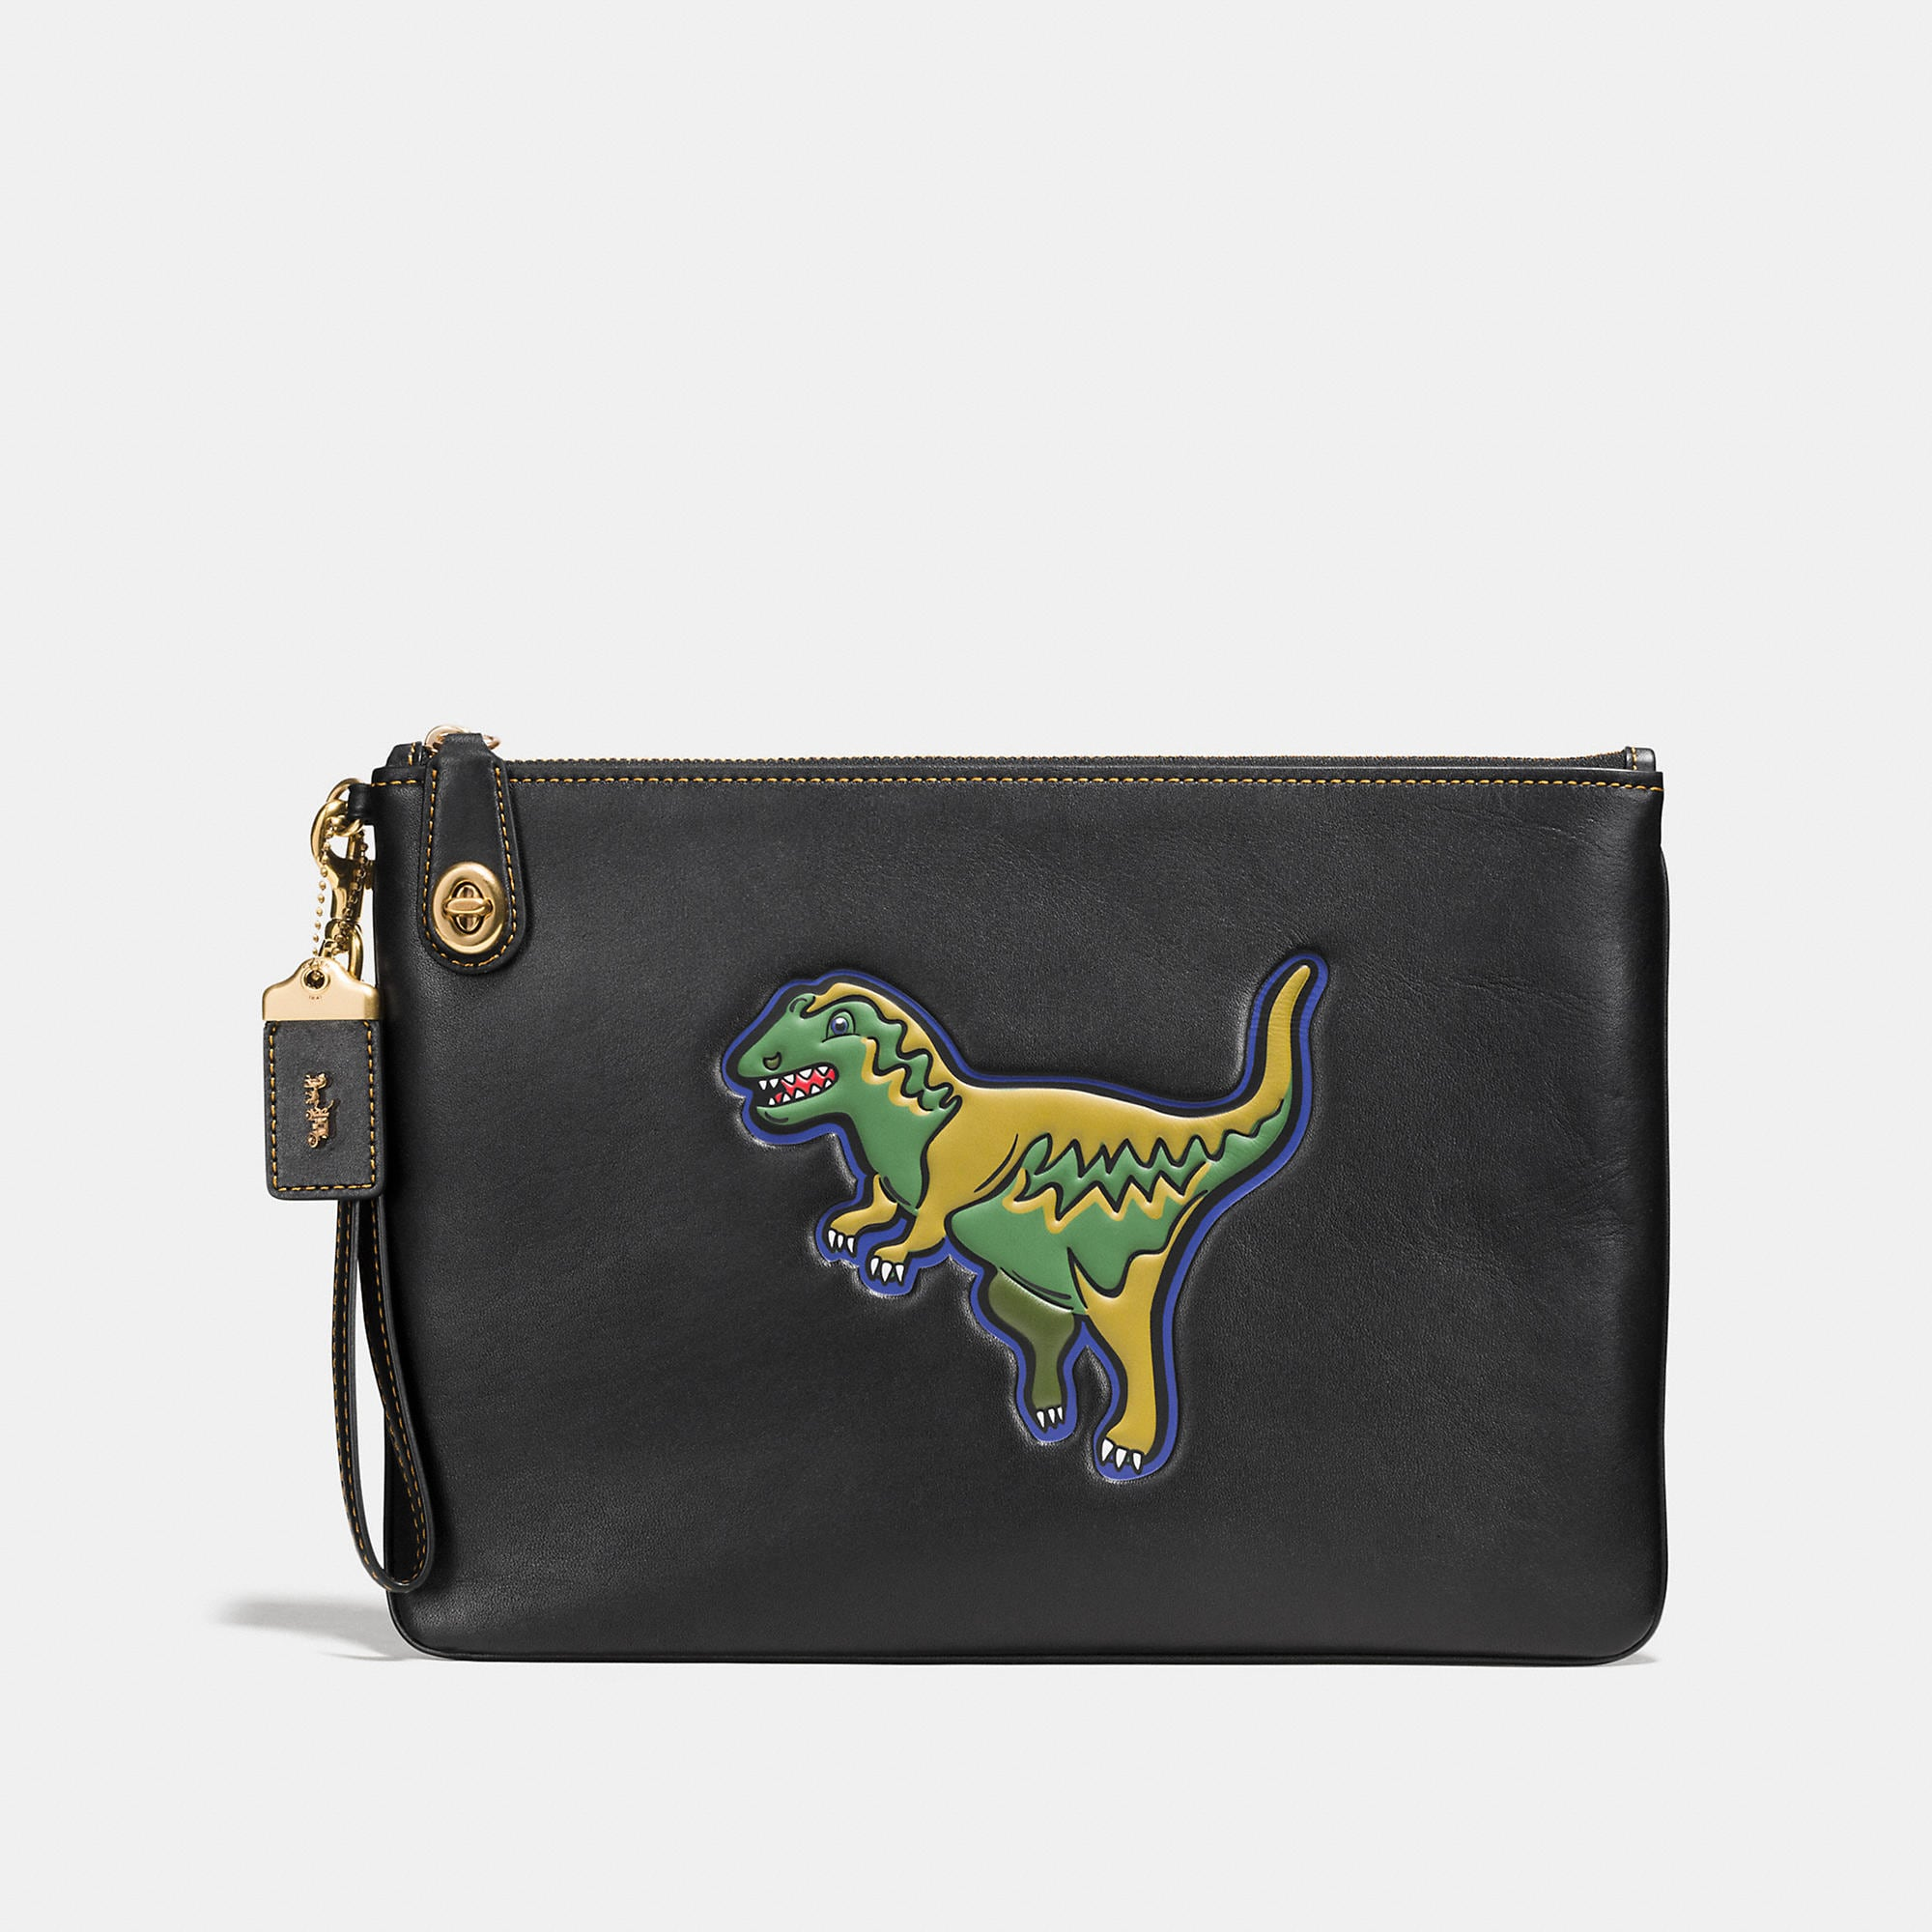 Coach Dinosaur Turnlock Wristlet 30 In Glovetanned Leather